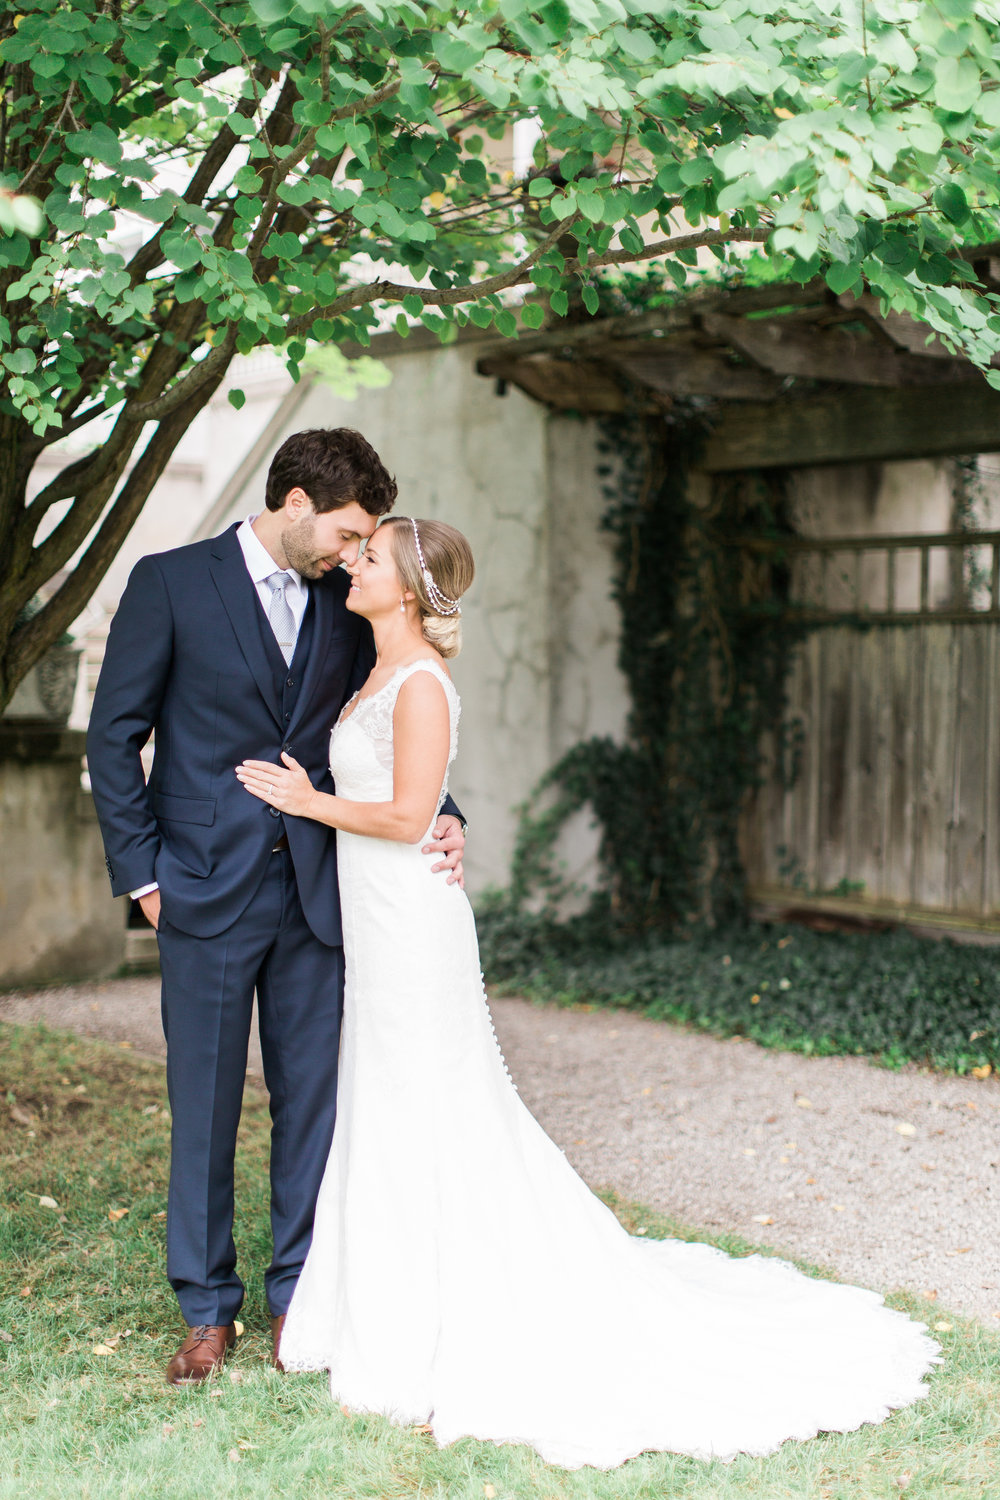 Romantic summer wedding at Langdon Hall in Cambridge